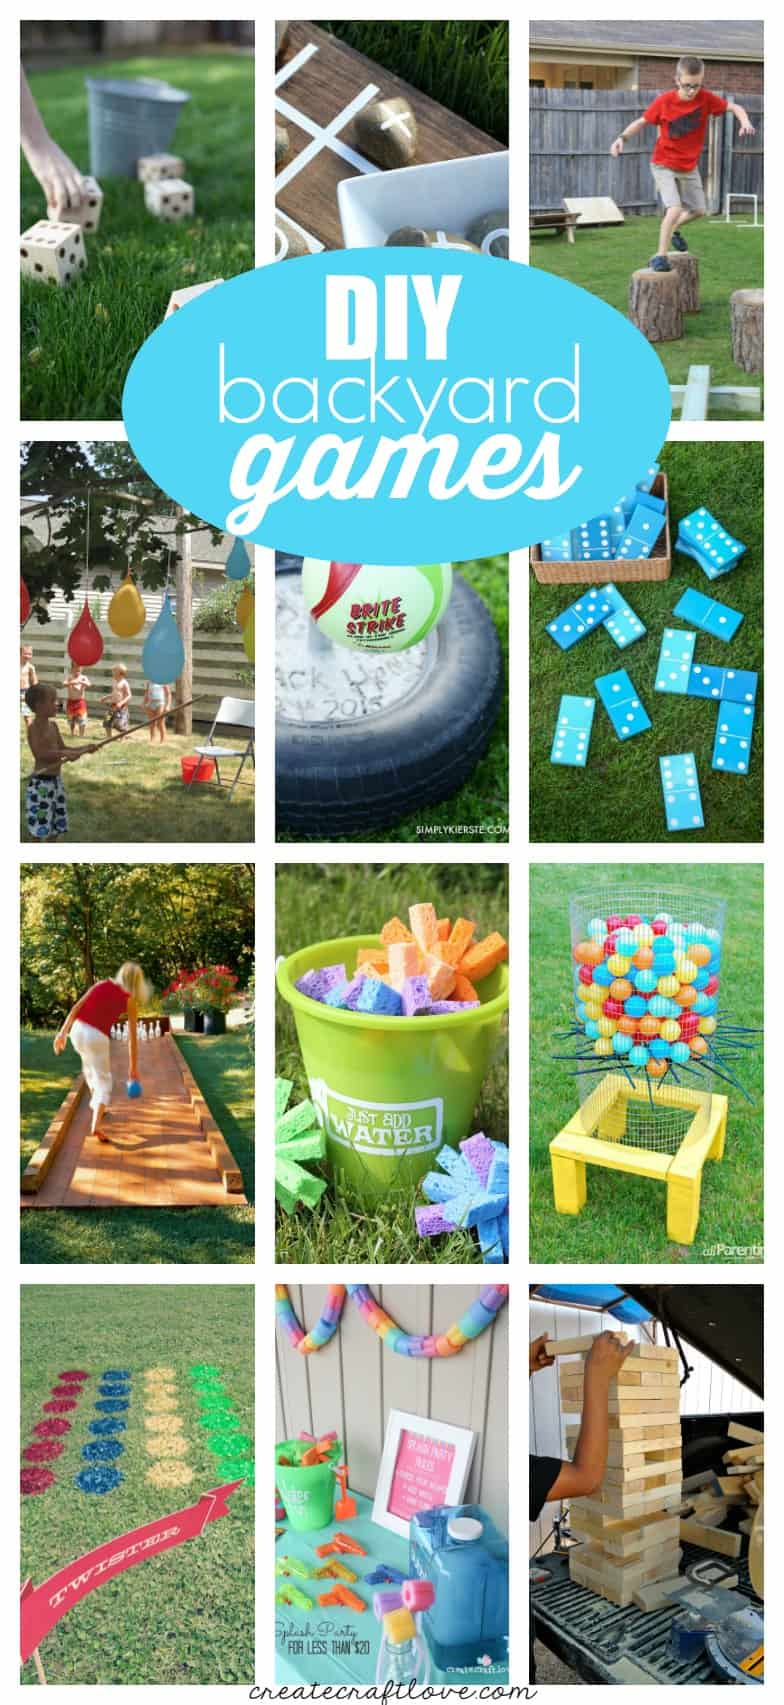 DIY Backyard Games for summer fun!